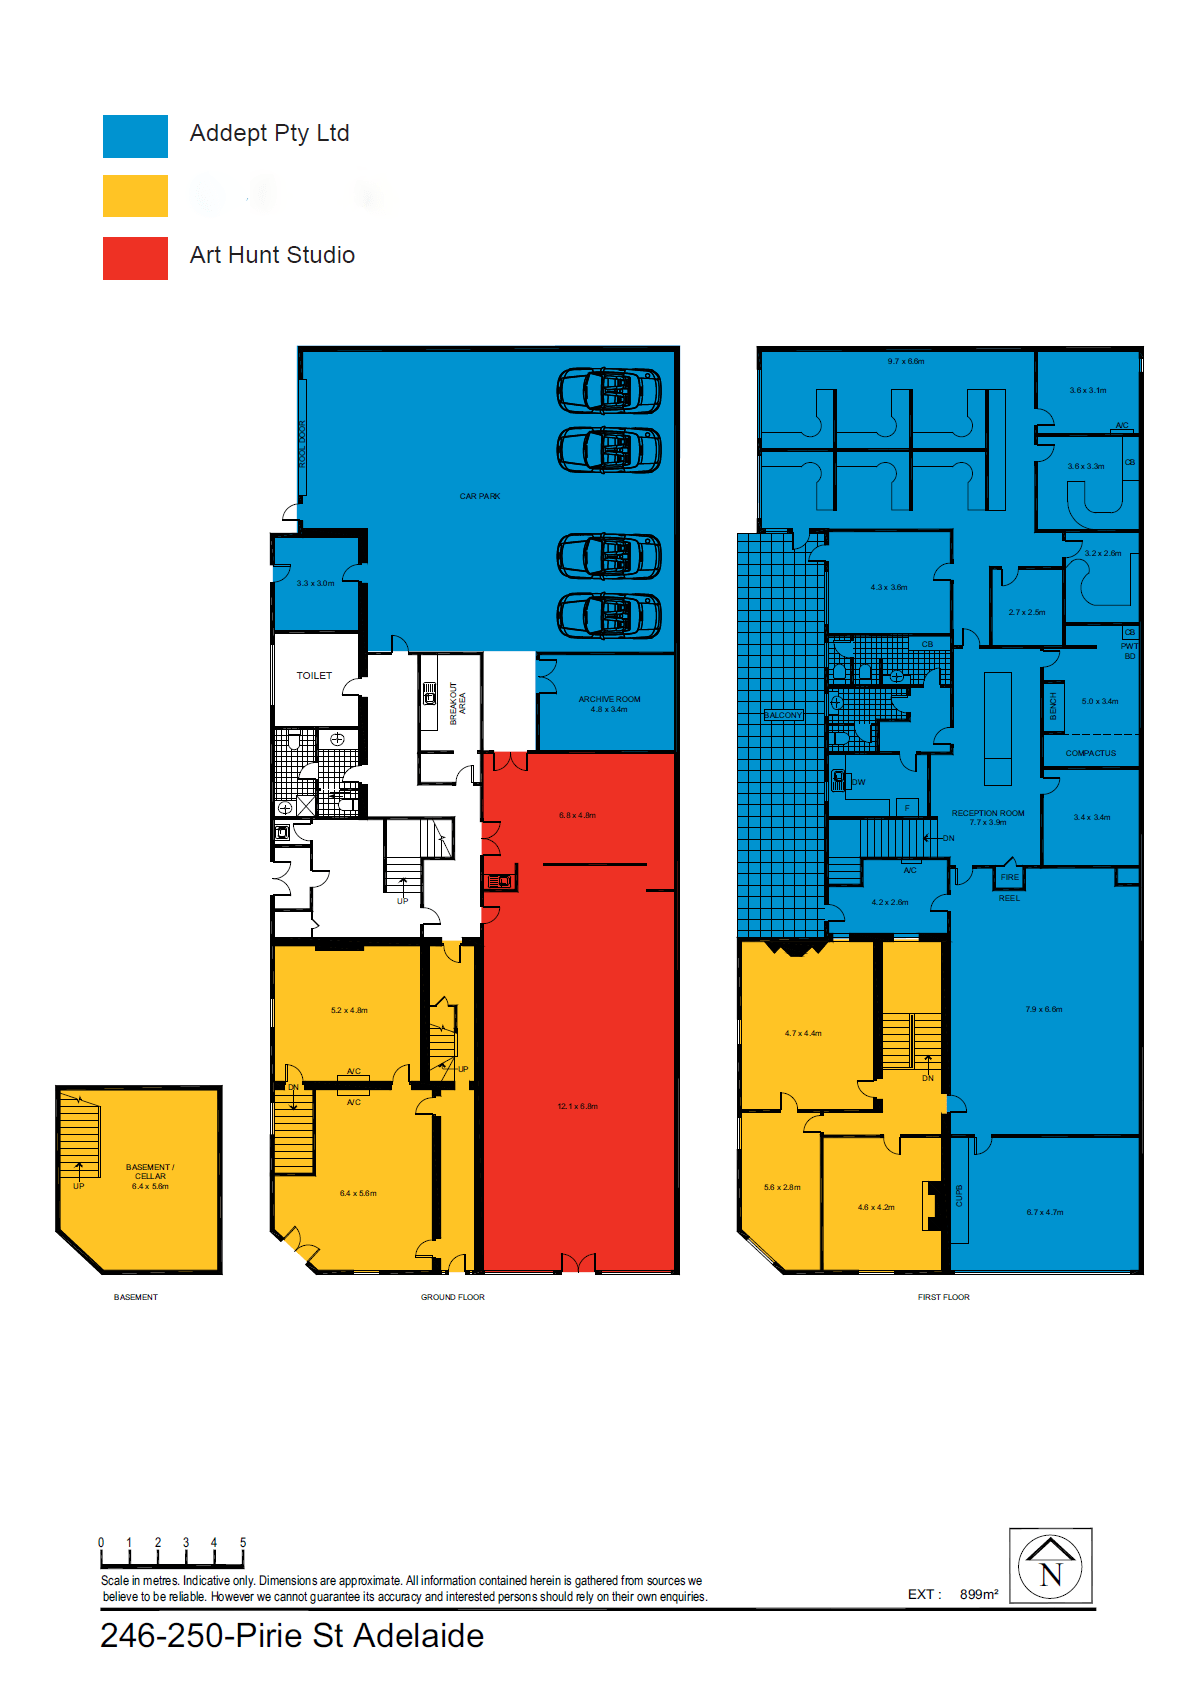 The amber coloured section is the available tenancy